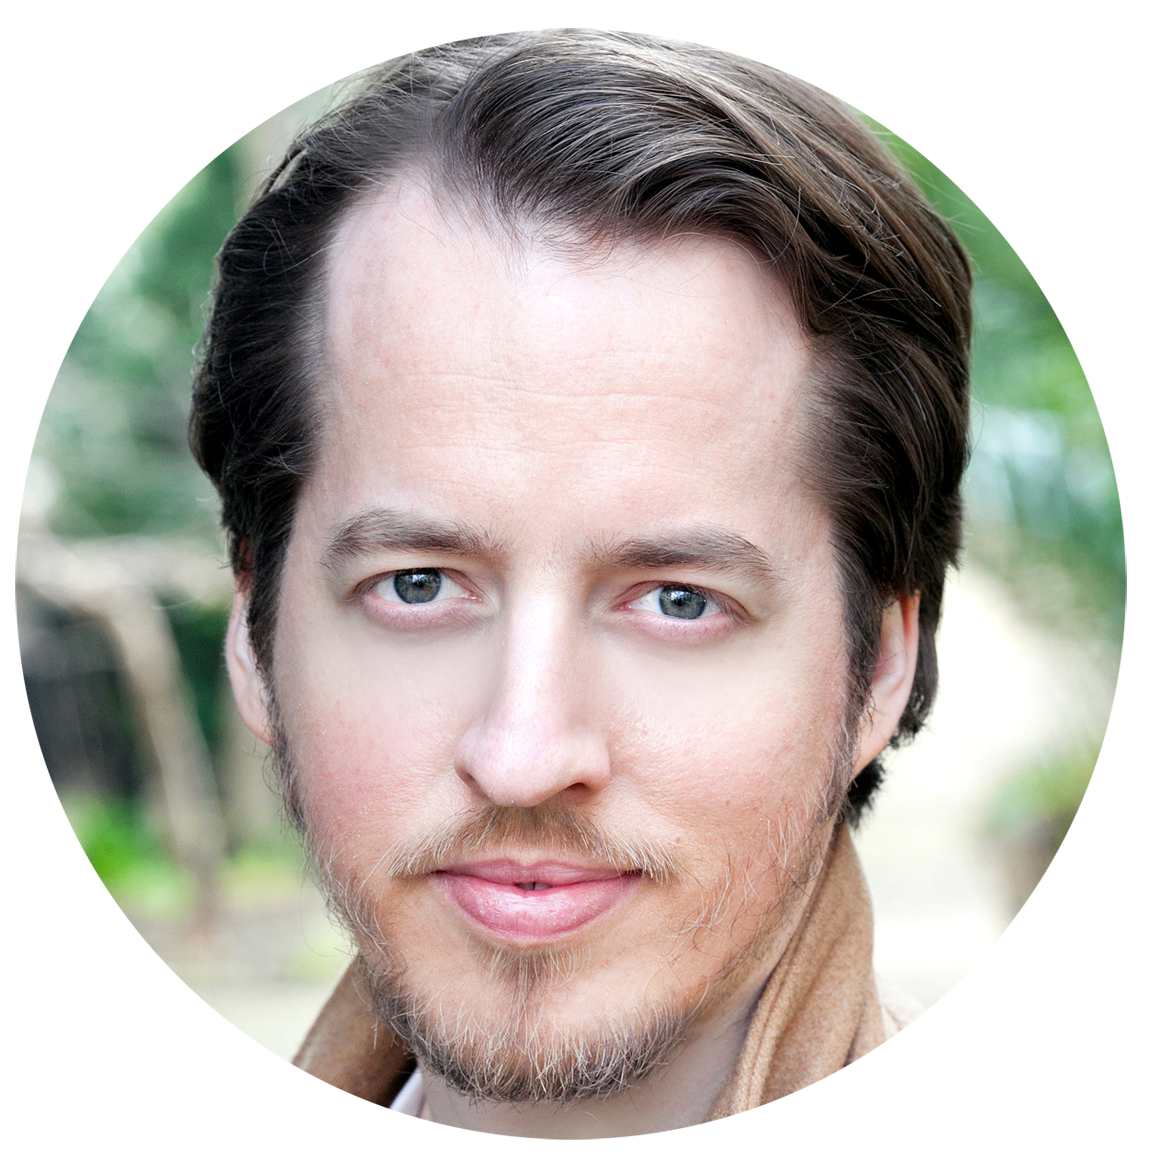 Klemens Koehring German voiceover headshot